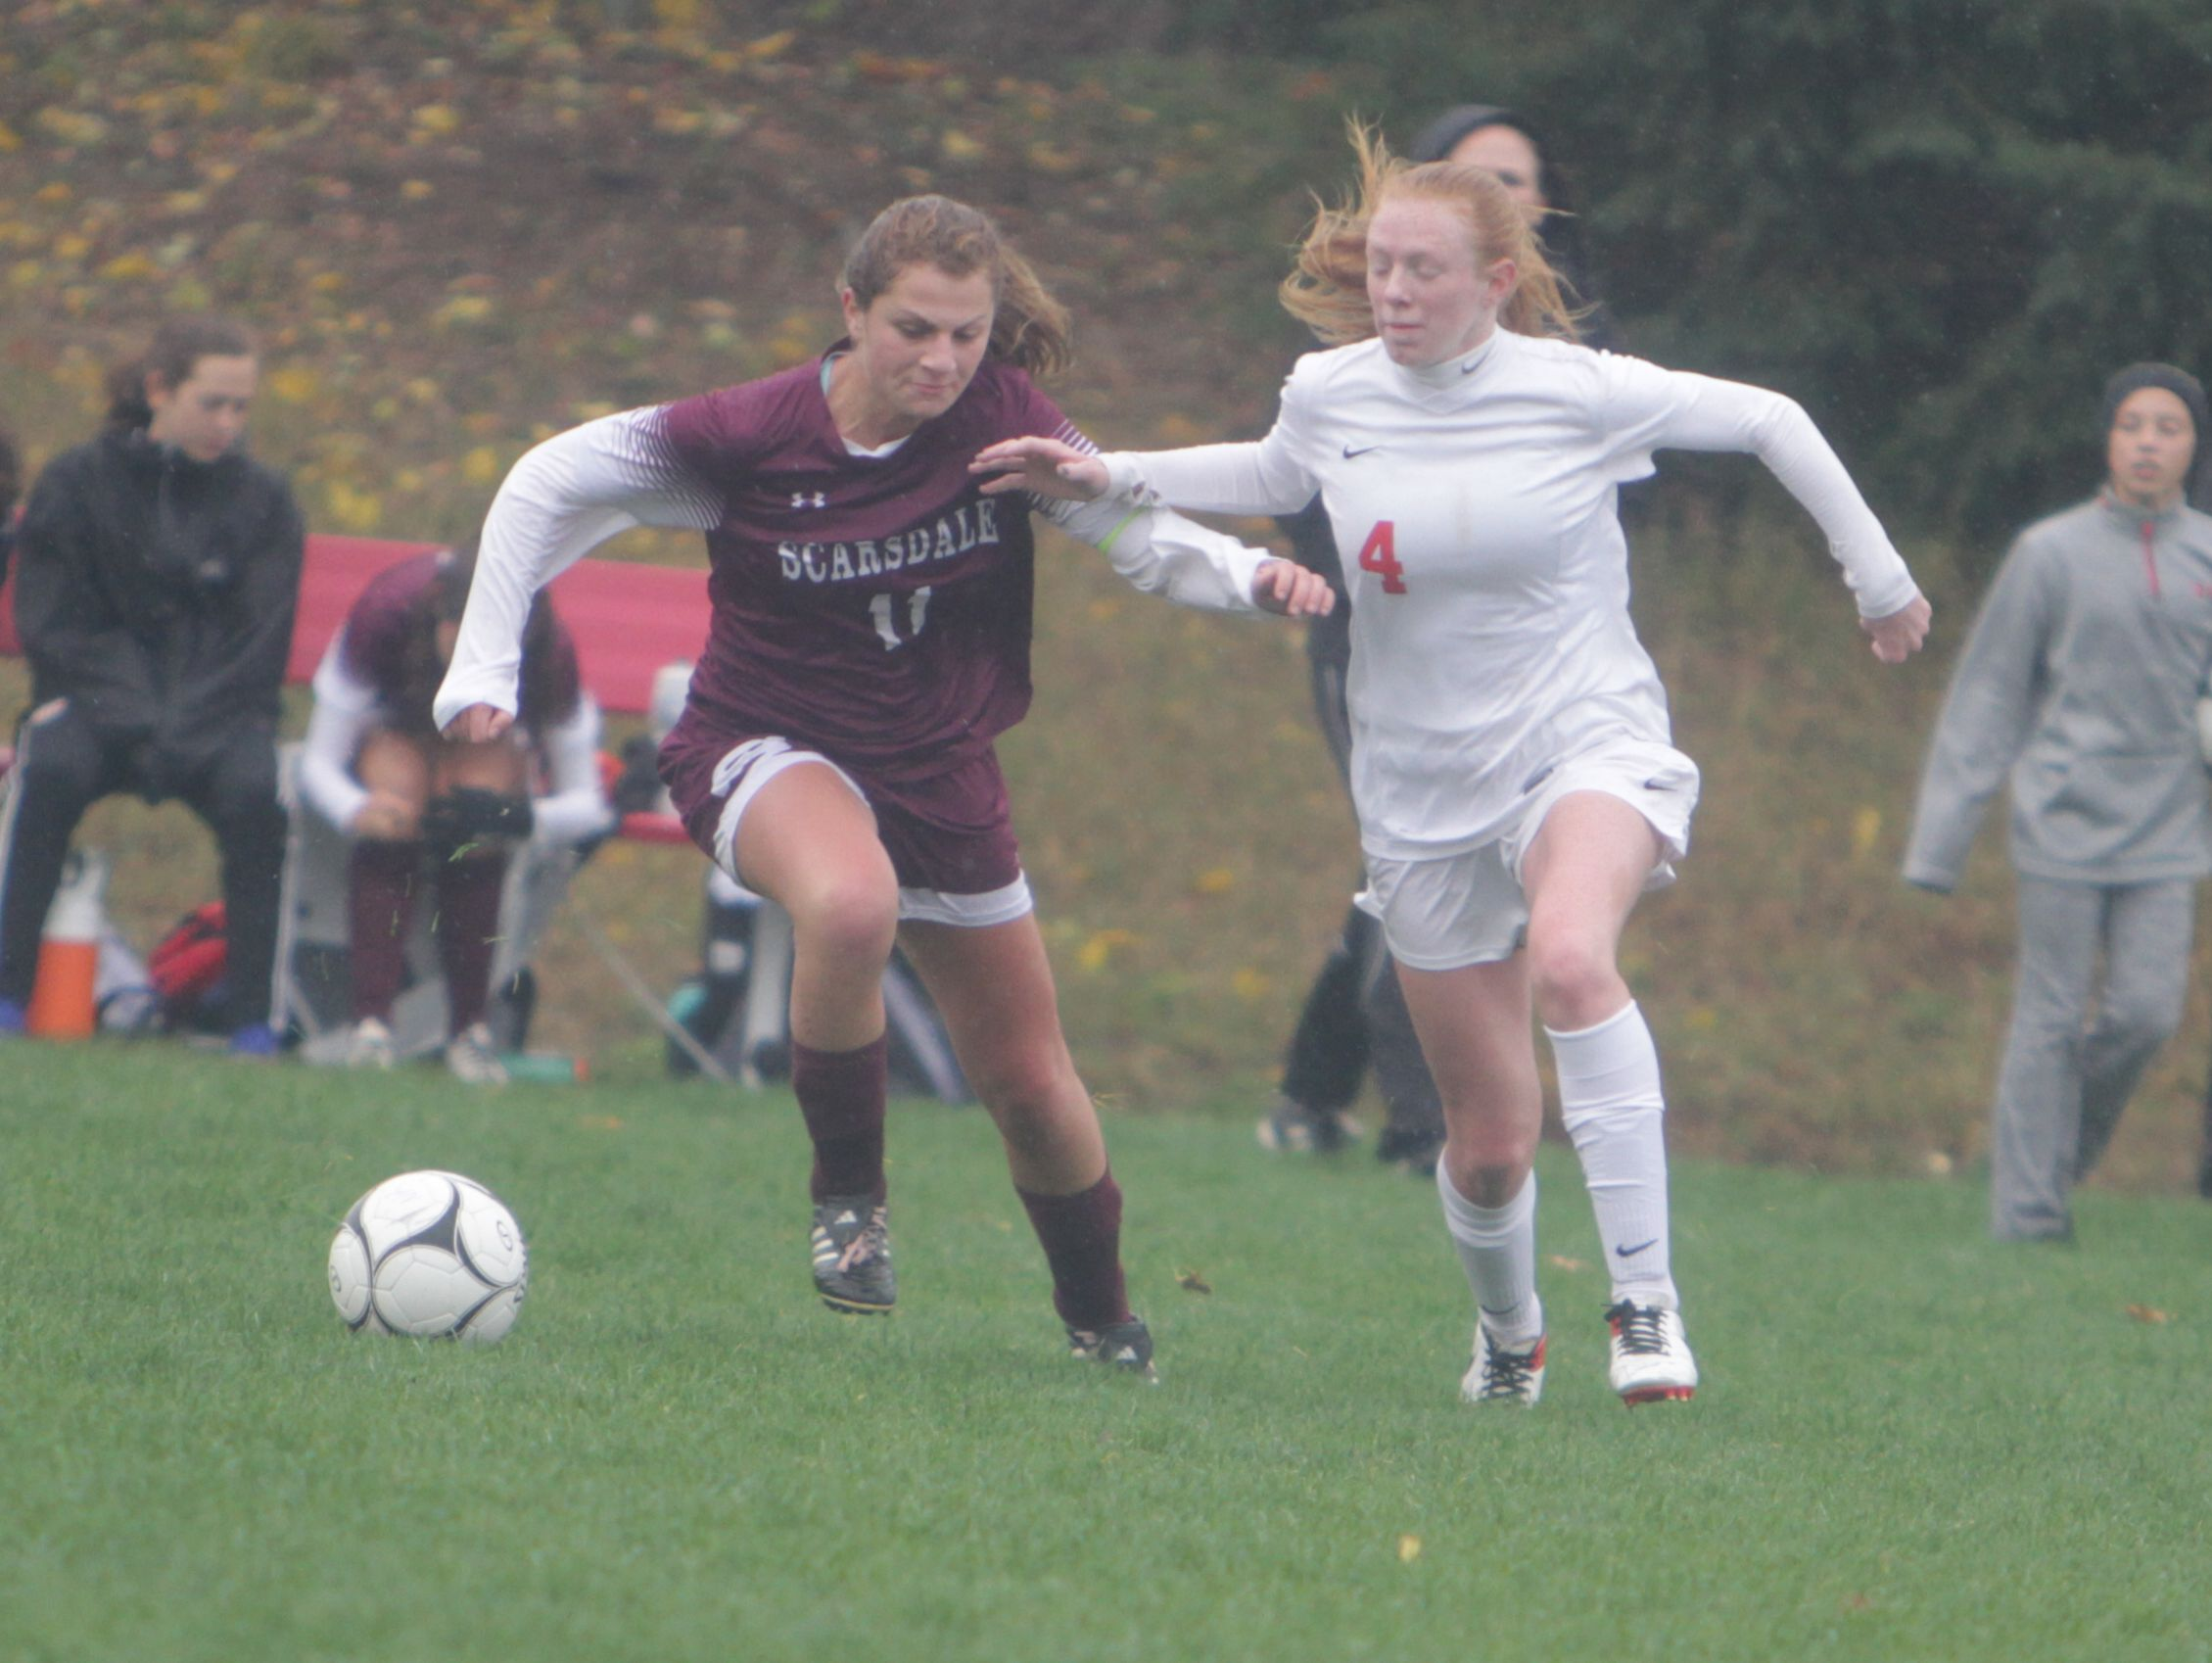 Scarsdale's Hayley Rozencwaig (11) and North Rockland's Kelly Brady (4) run after the ball during a Section 1 girls soccer Class AA first round game between North Rockland and Scarsdale at North Rockland High School on Saturday, Oct. 22nd, 2016. North Rockland won 1-0.